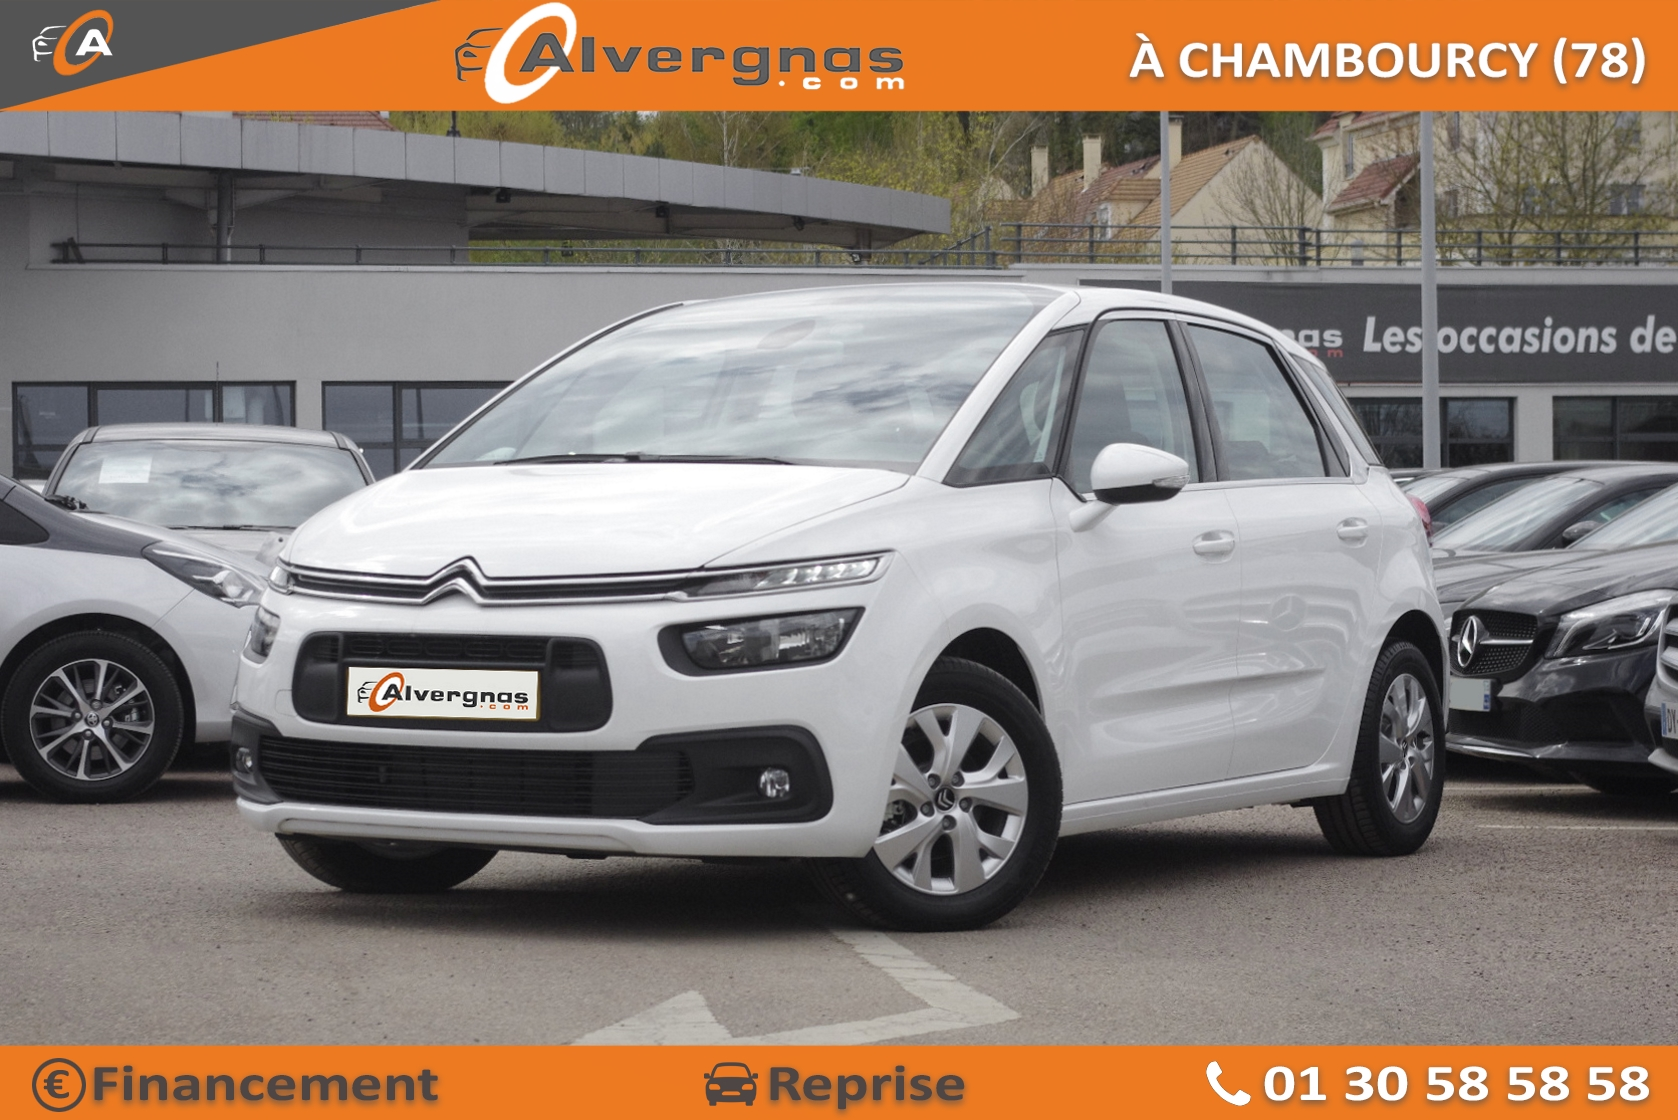 CITROEN C4 SPACETOURER d'occasion sur Paris